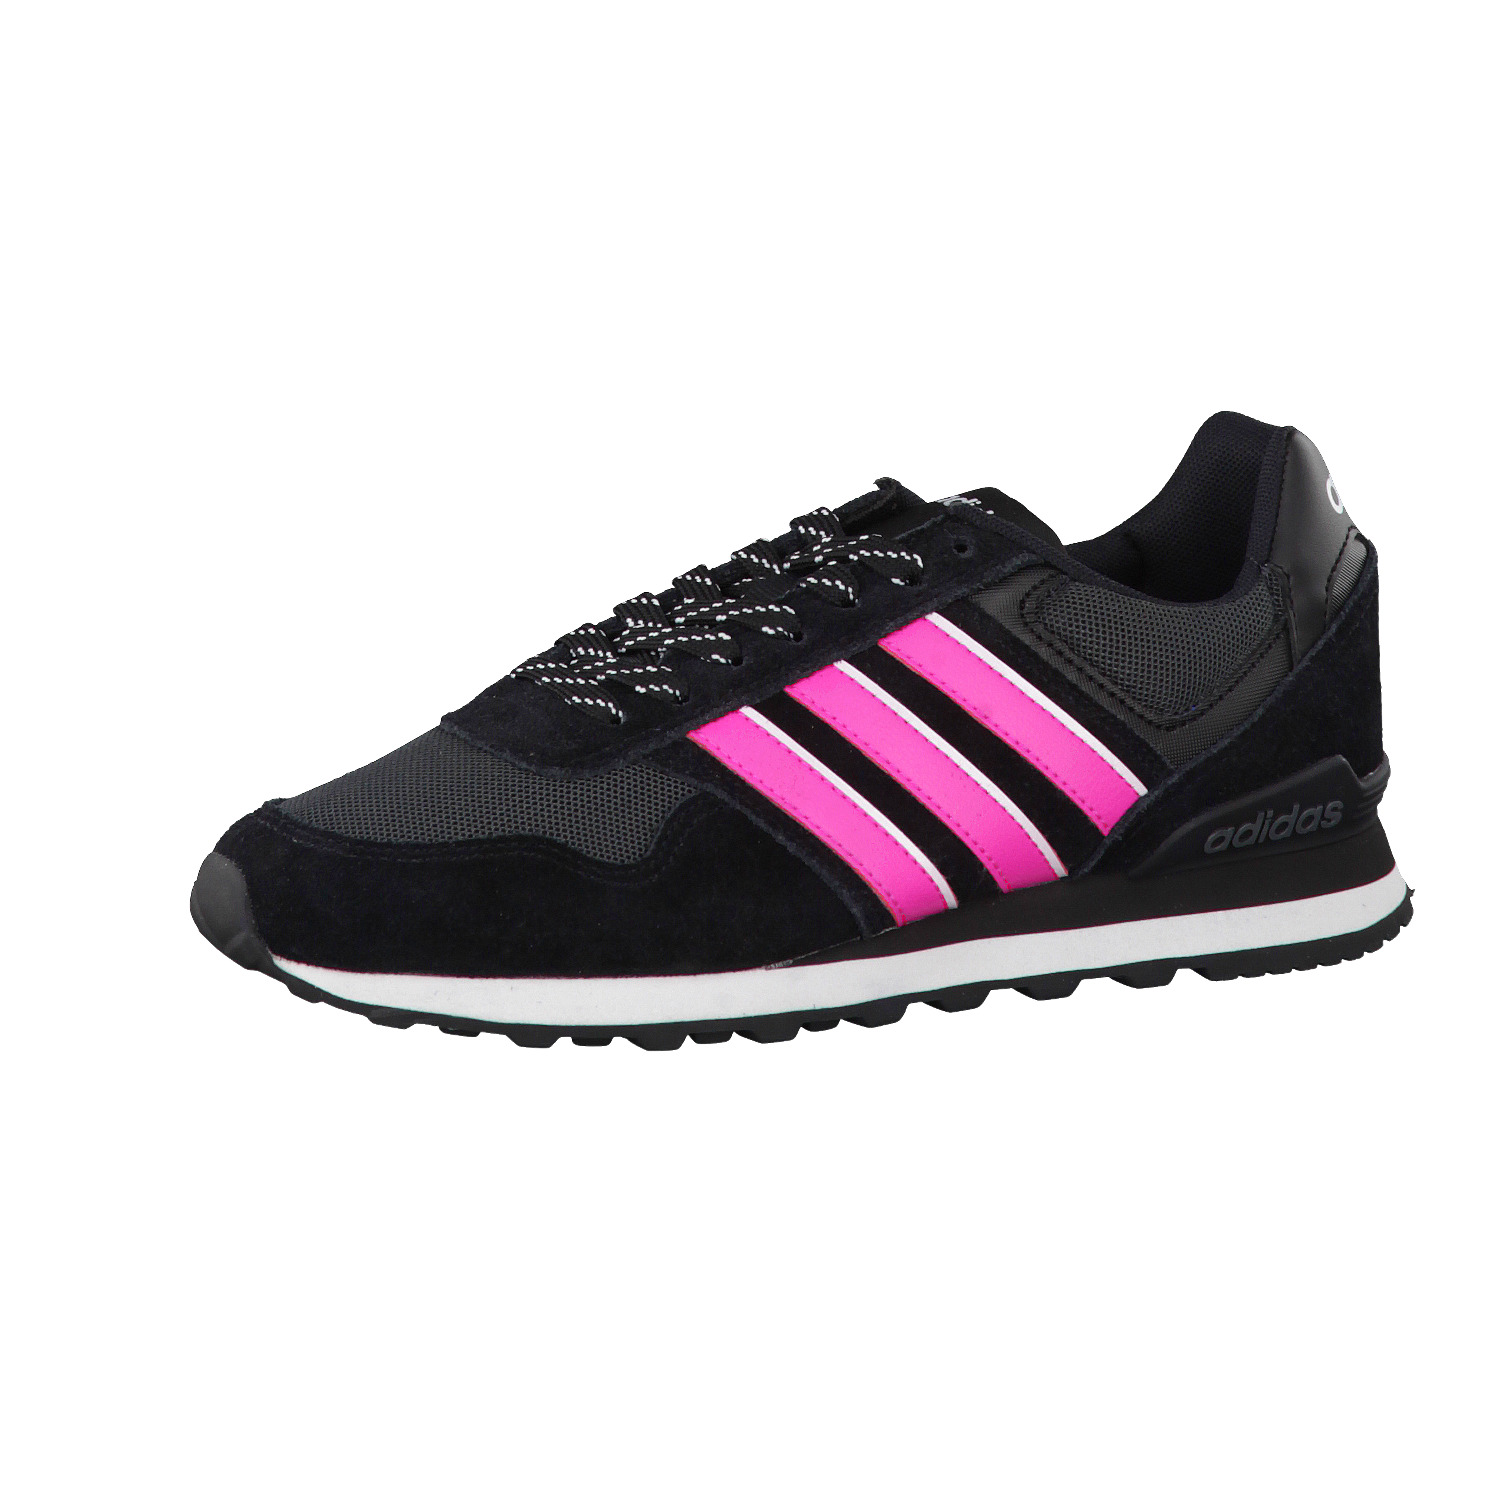 09120ab20e0 ... promo code for baby sneakers lite racer adidas neo damen sneaker 10k  93232 b5963 low ...